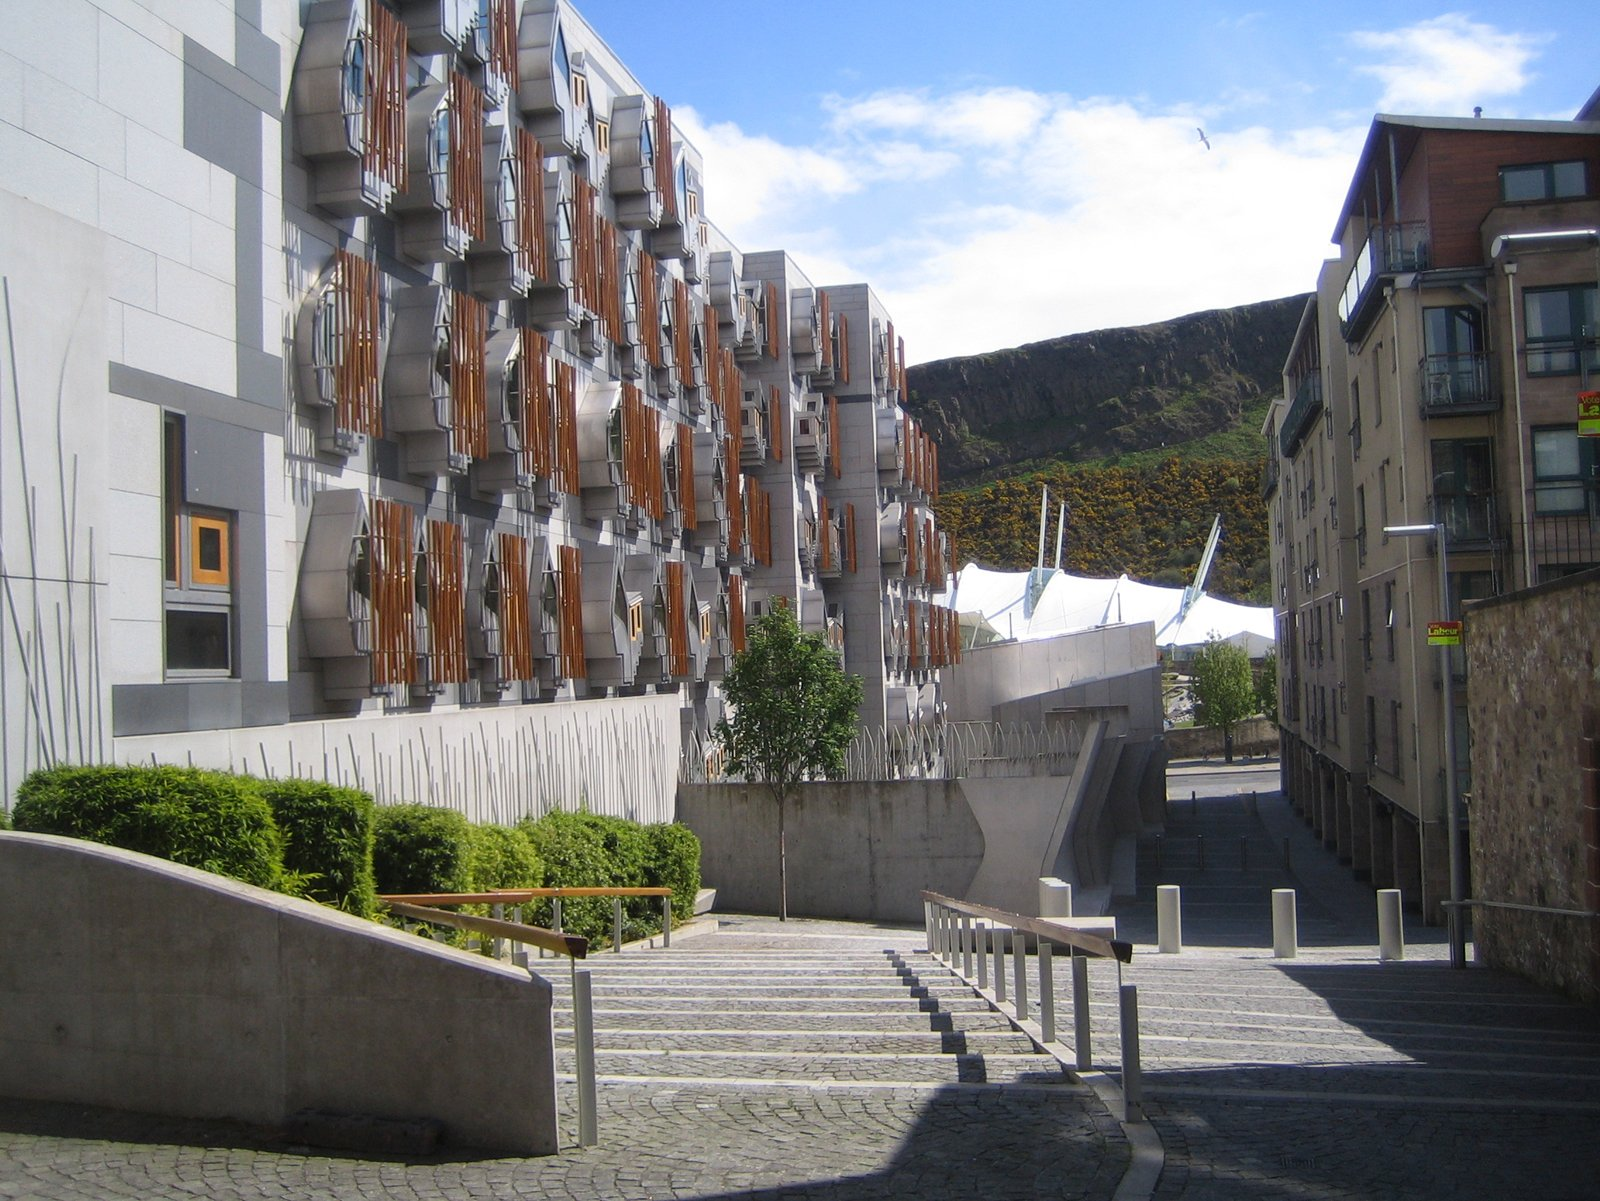 From Reid Close I got a great view of the back of the Scottish Parliament building and the craggy Arthur's Seat. The MPs's Thinkpods can be seen on the exterior of the Parliament.  Photo 6 of 11 in Scotland: Day 2